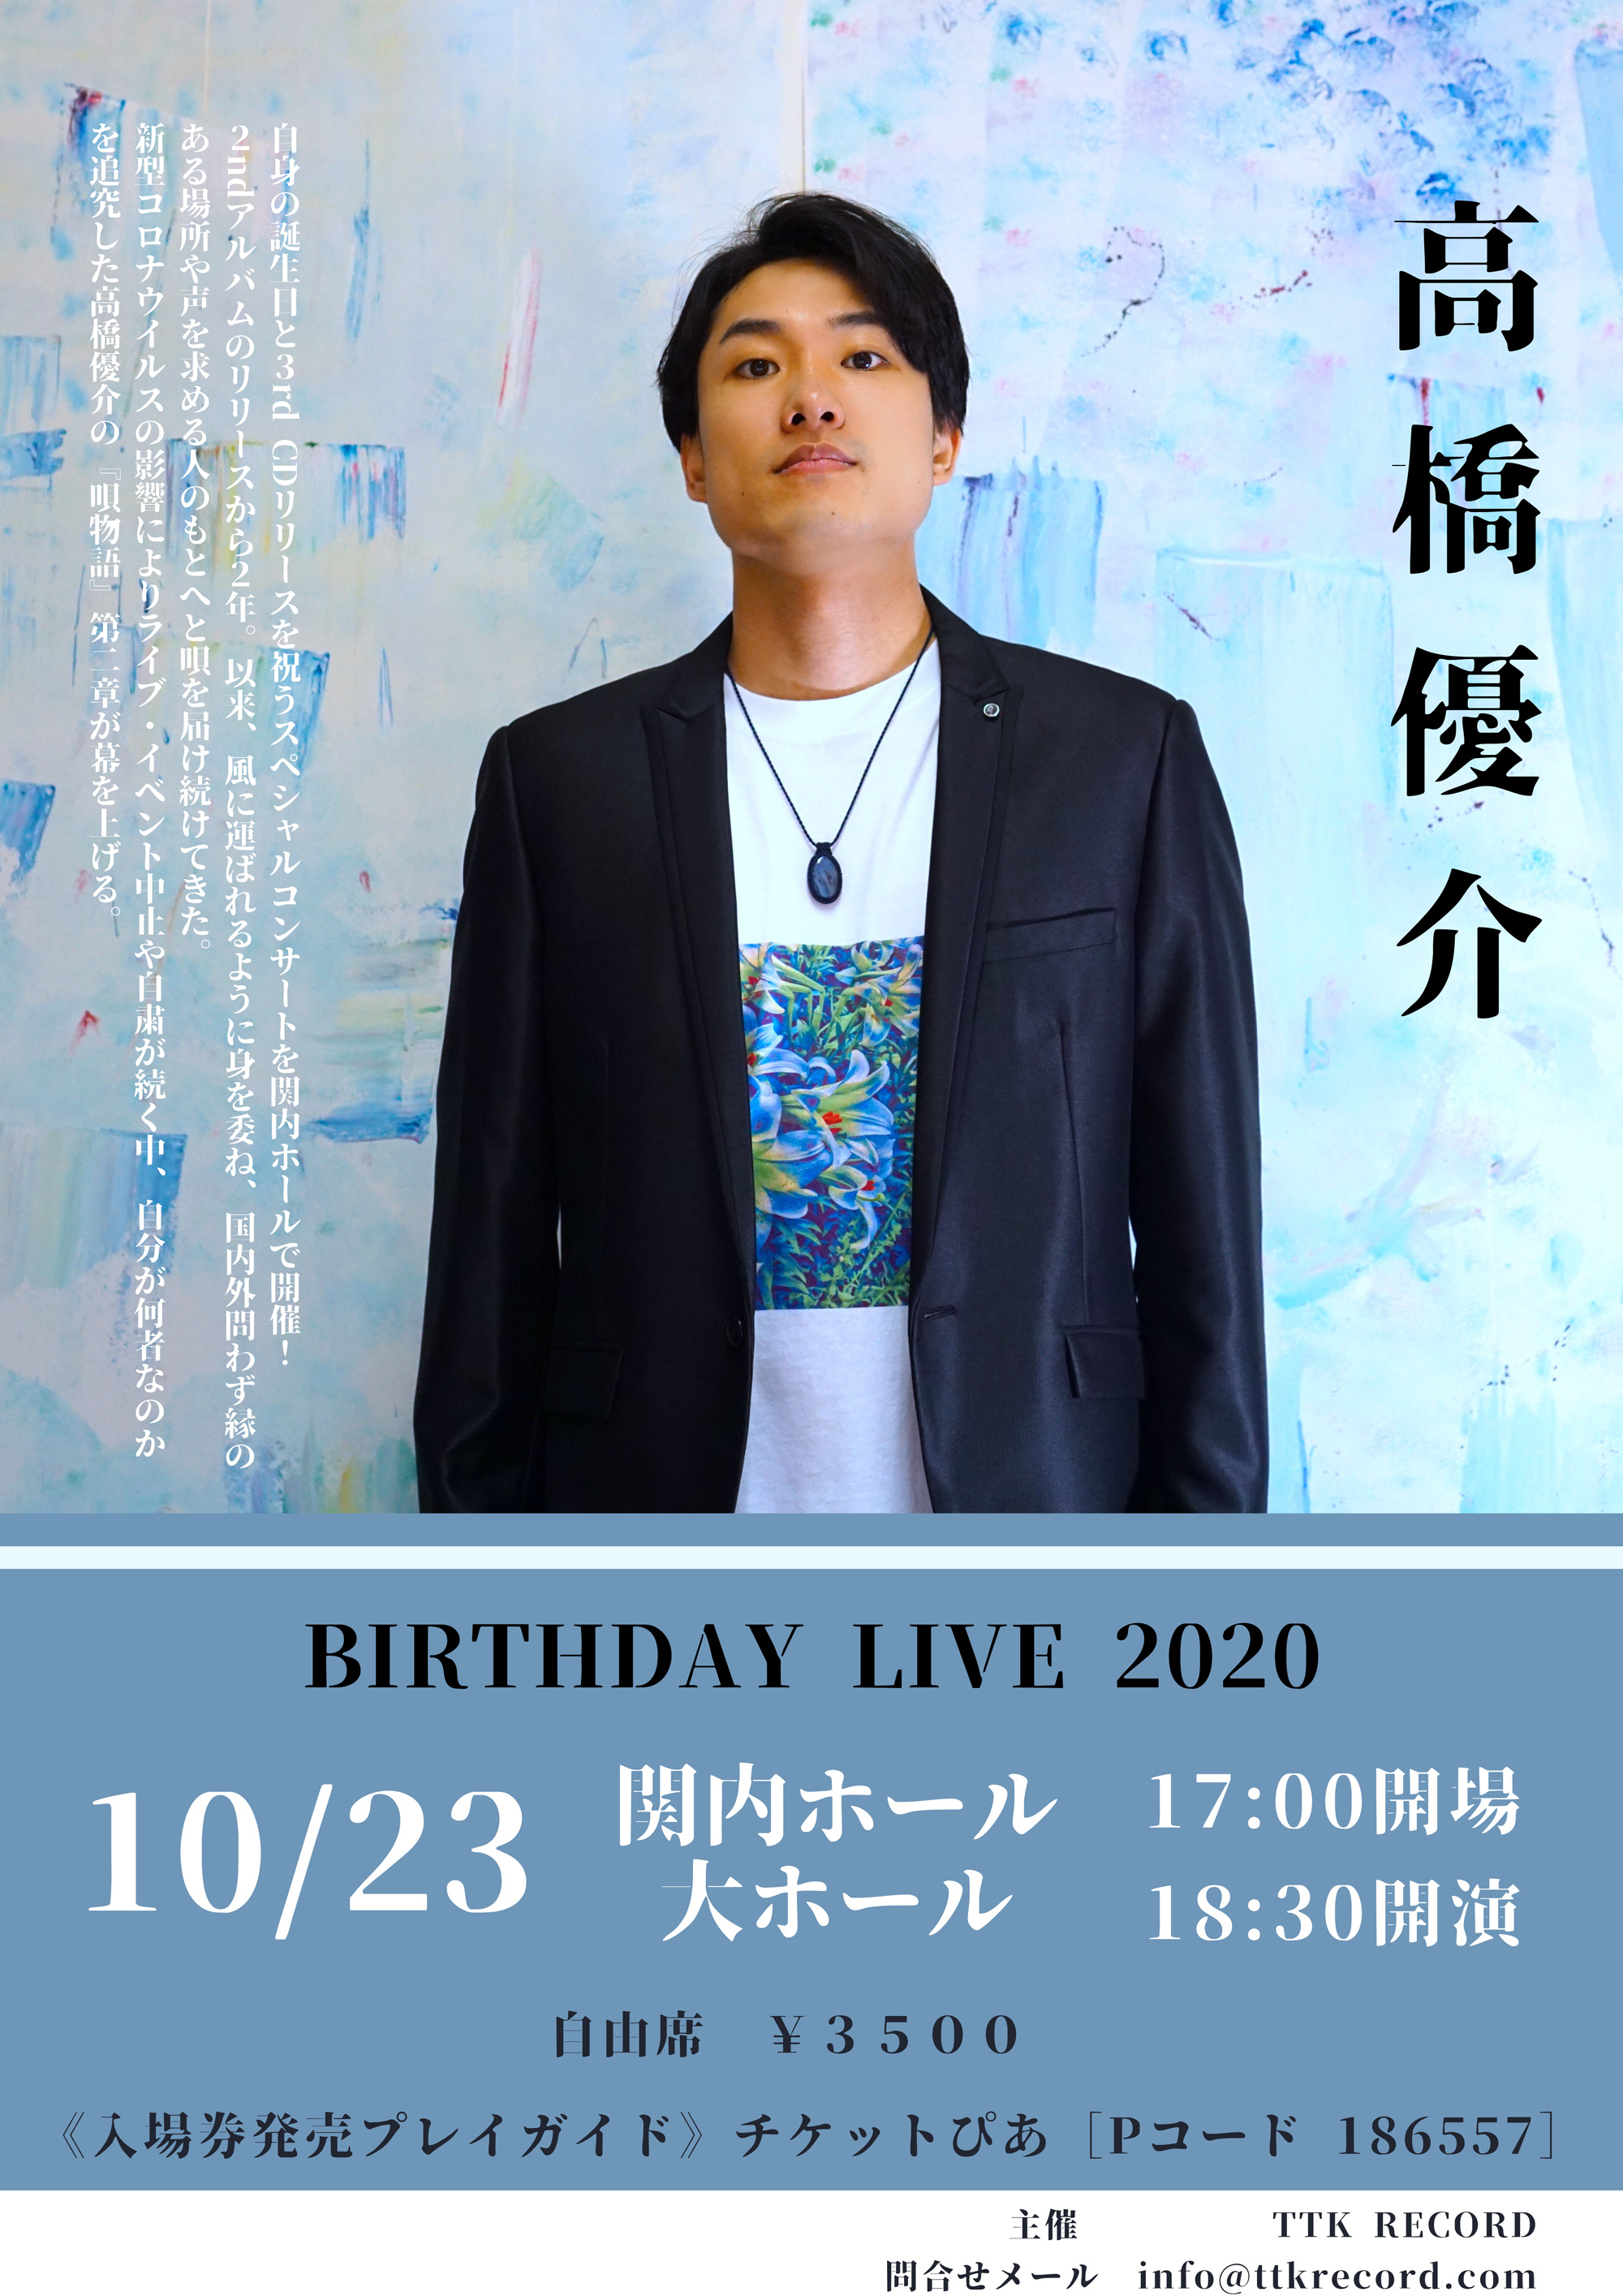 高橋優介BIRTH DAY LIVE 2020